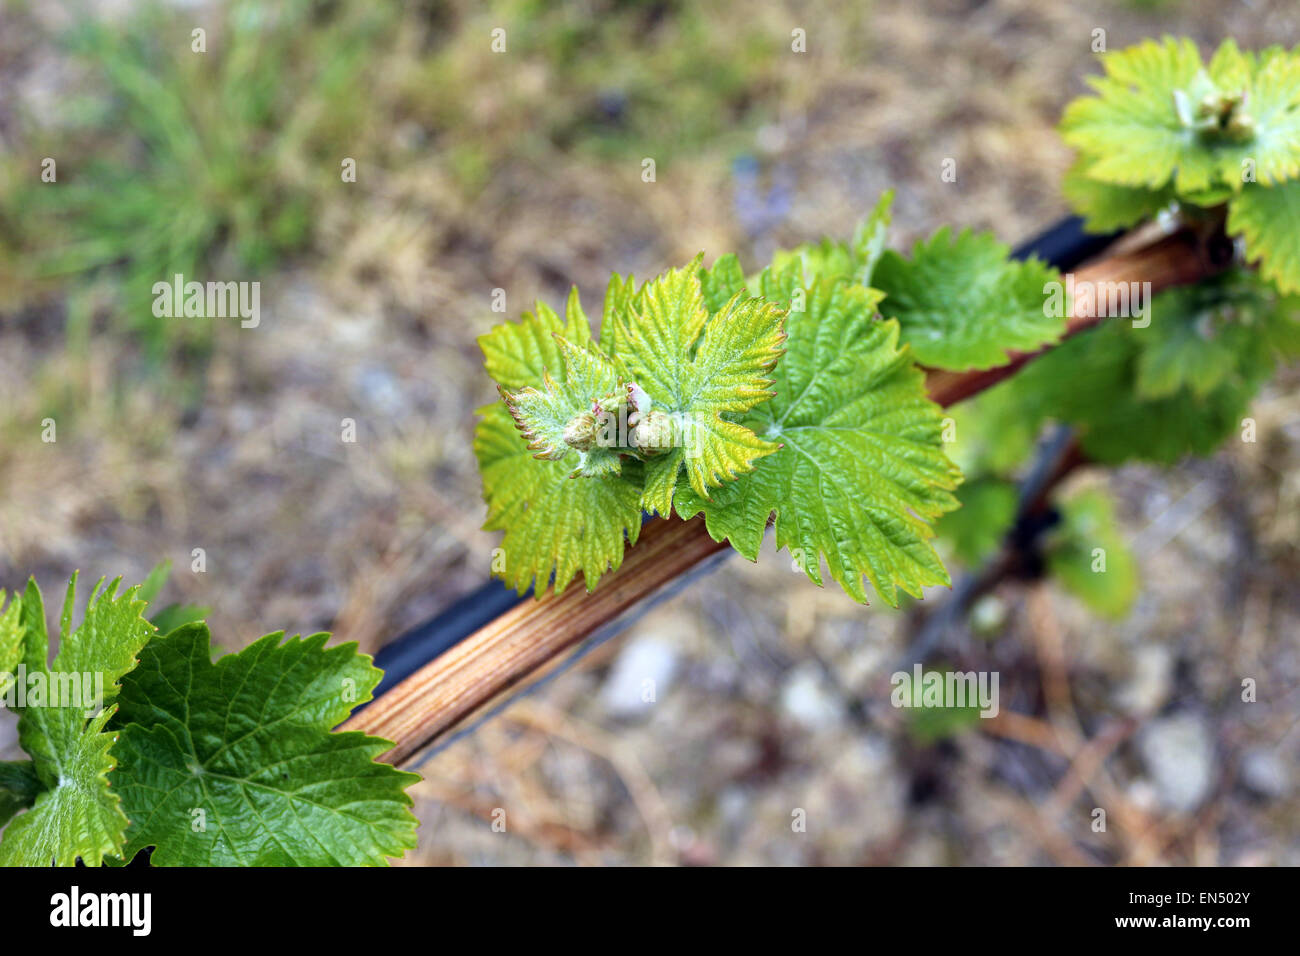 Young grape vine leaves in Liguria. Photography by Qin Xie. Stock Photo